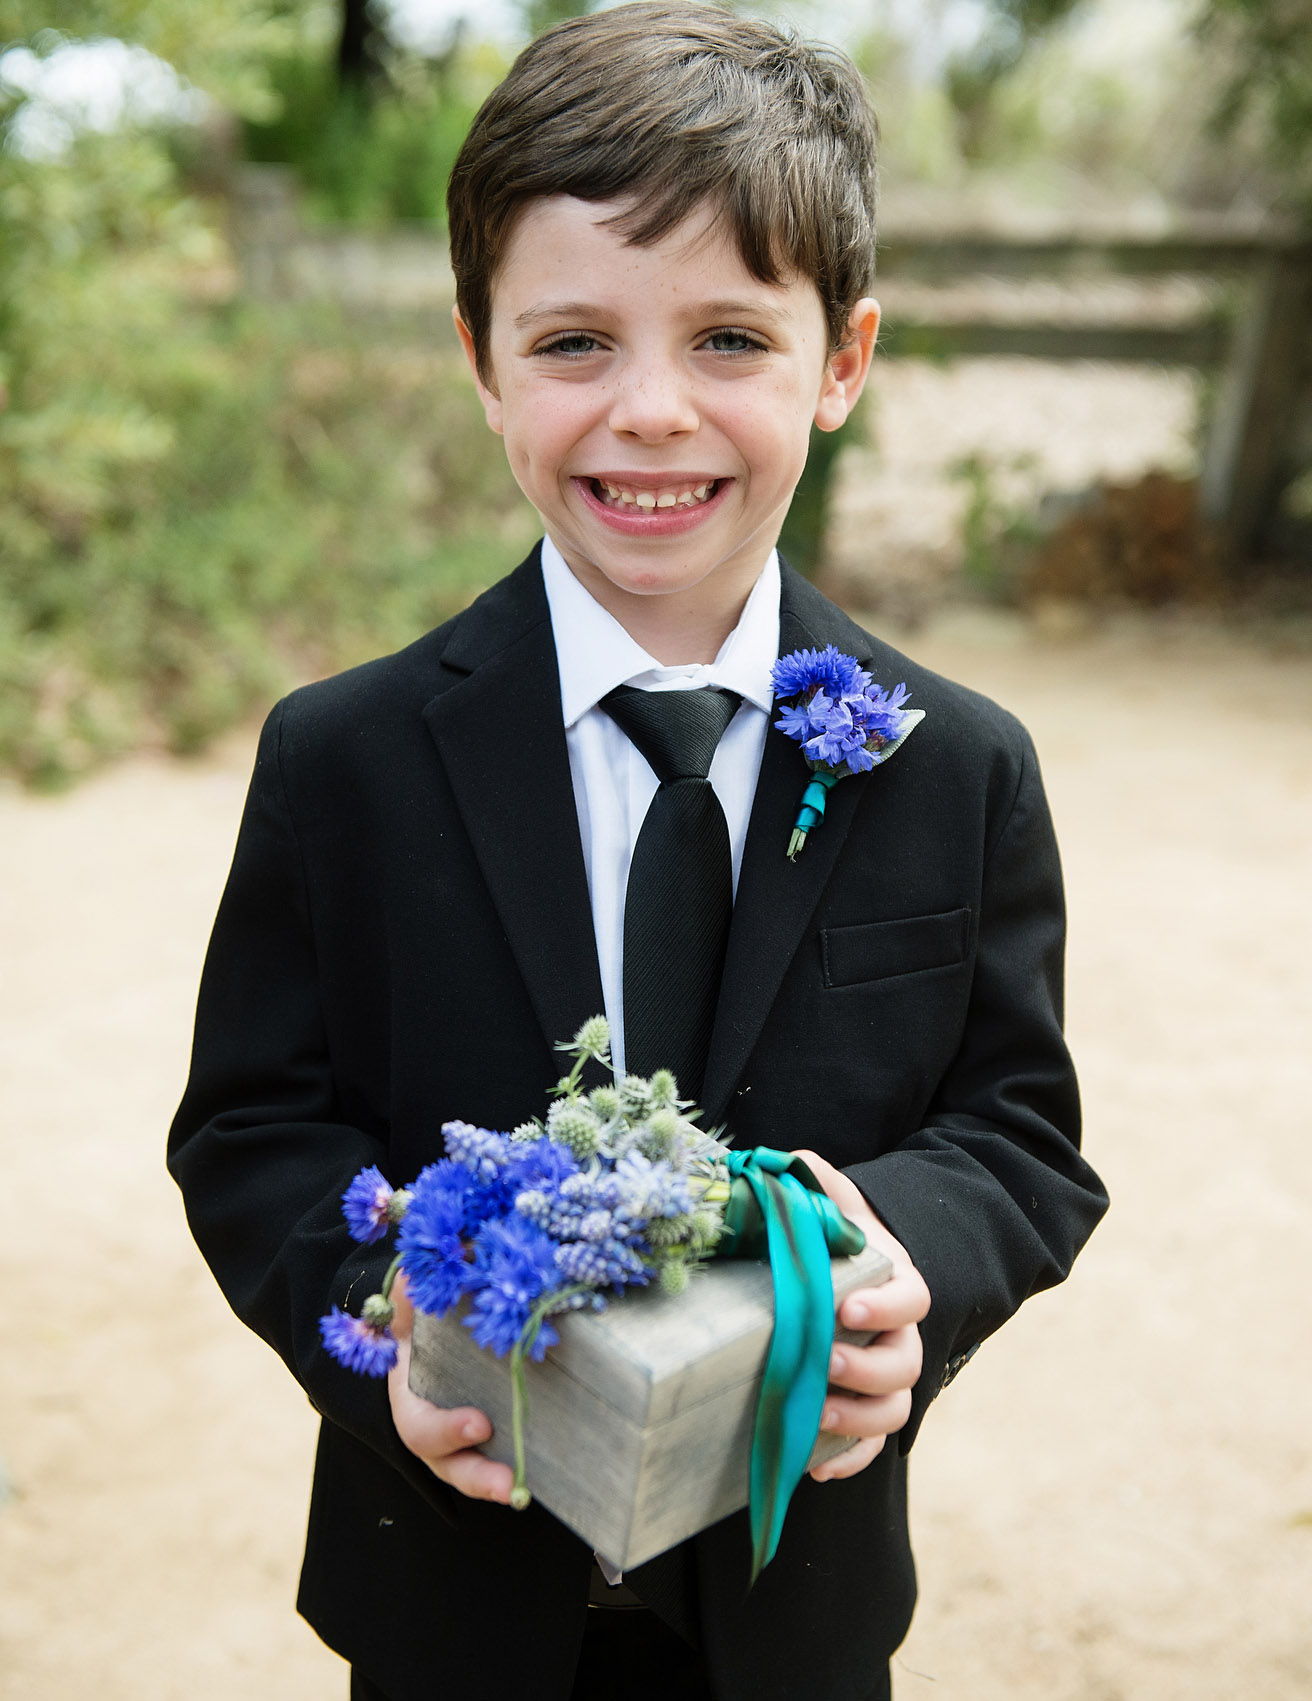 ring bearer that are anything but ordinary